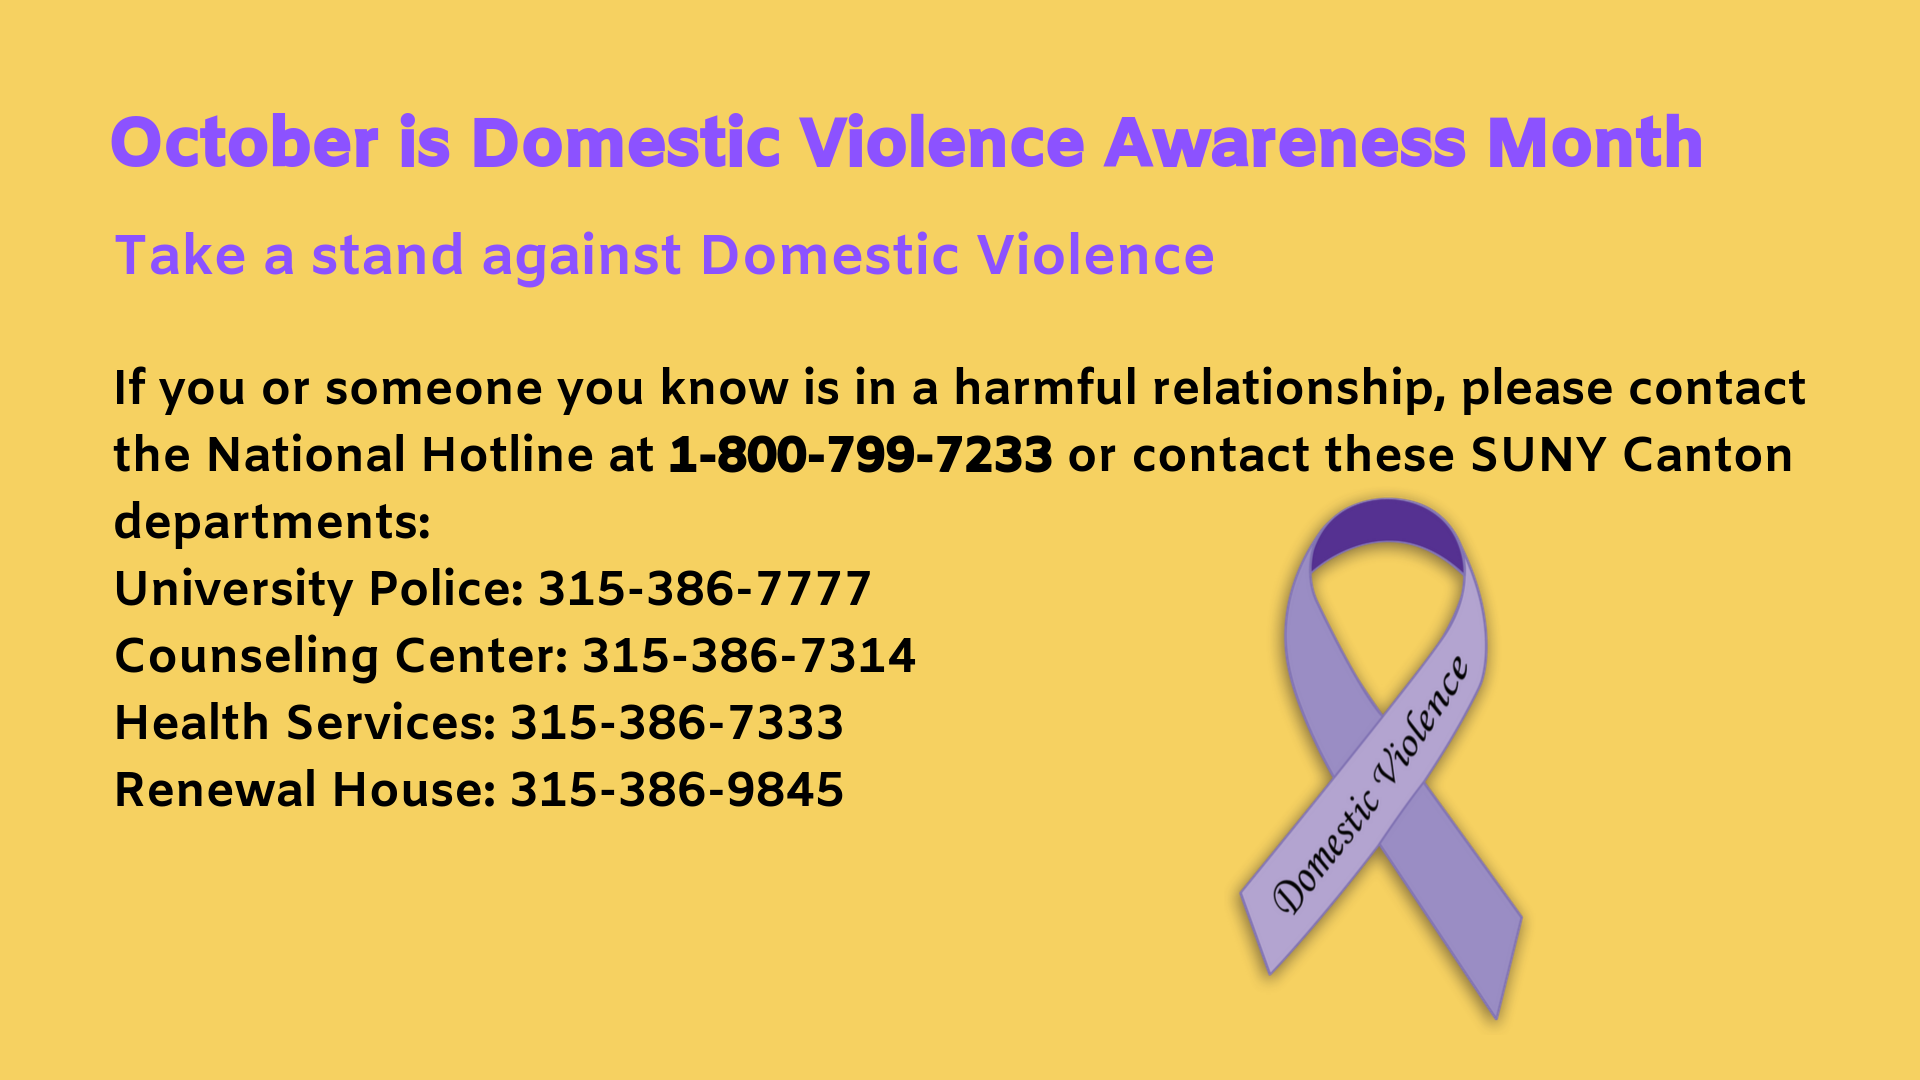 October is Domestic Violence Awareness Month. If you or someone you know is in a harmful relationship, please contact the National Hotline at 1-800-799-7233 or contact these SUNY Canton departments: University Police: 315-386-7777 Counseling Center: 315-386-7314 Health Services: 315-386-7333 Renewal House: 315-386-9845